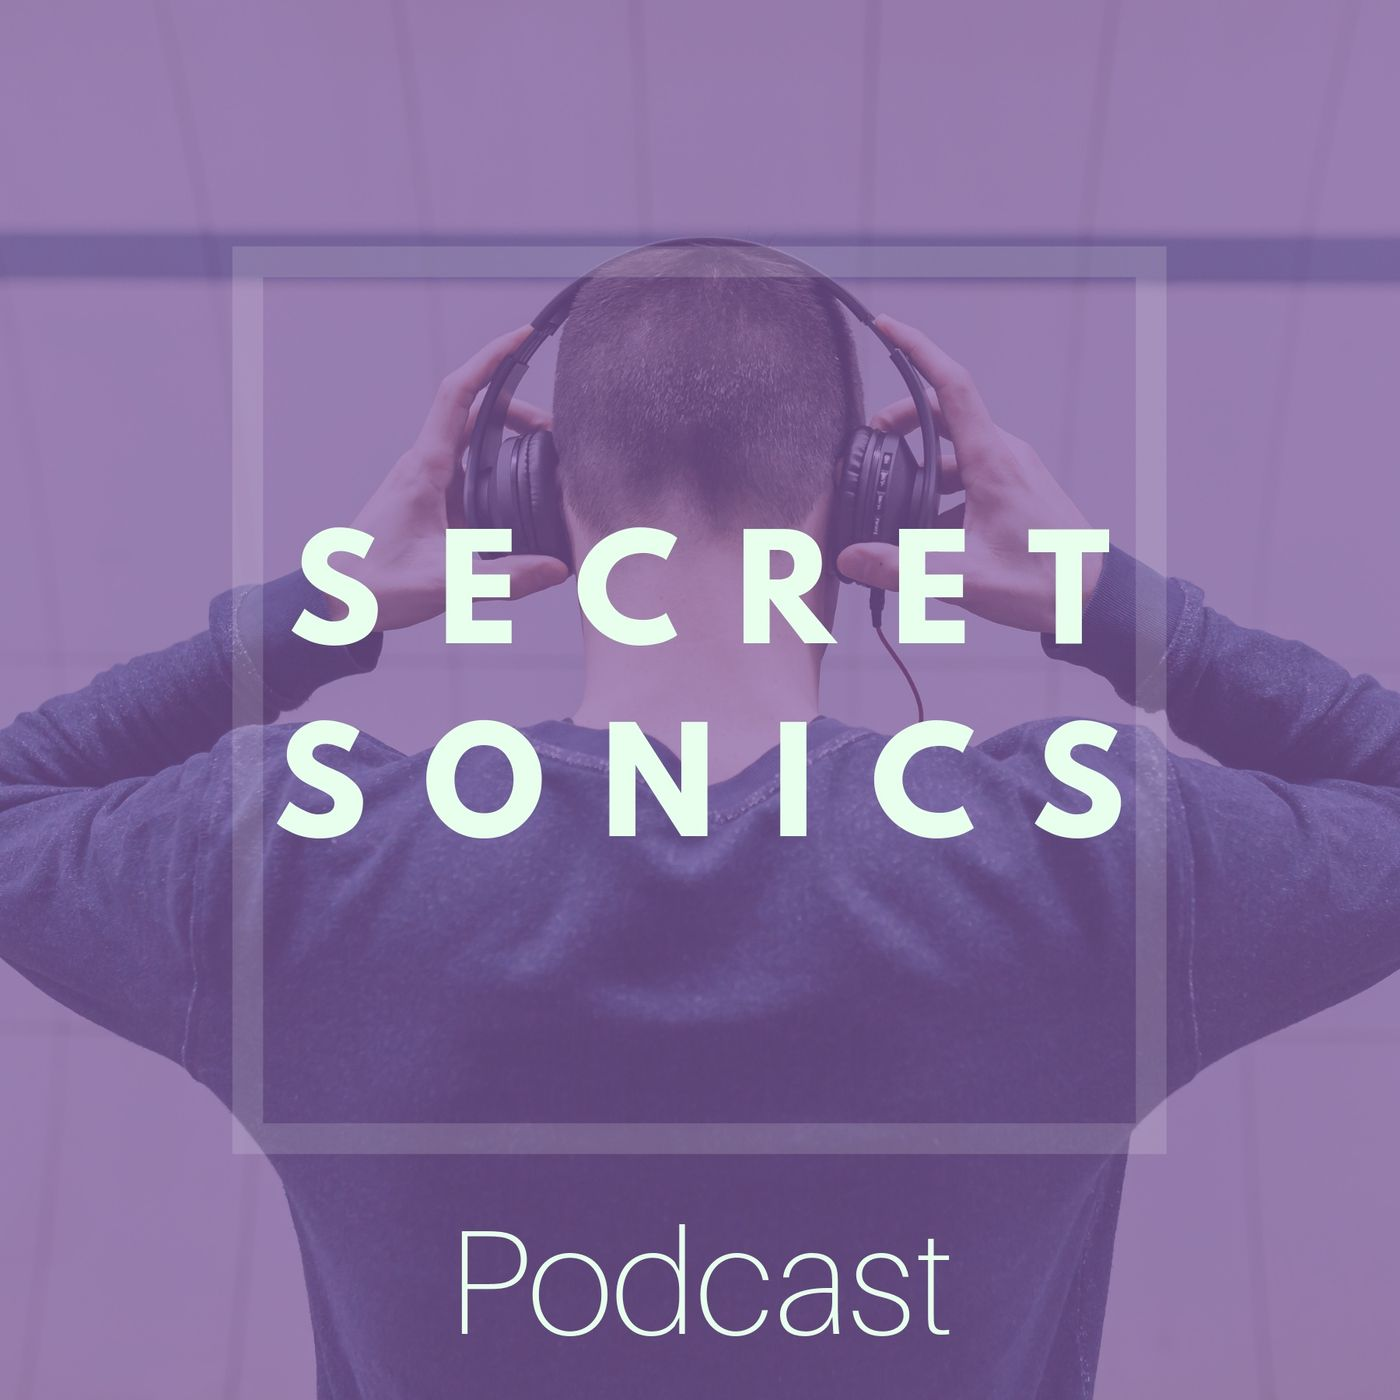 Secret Sonics 015 - Decco